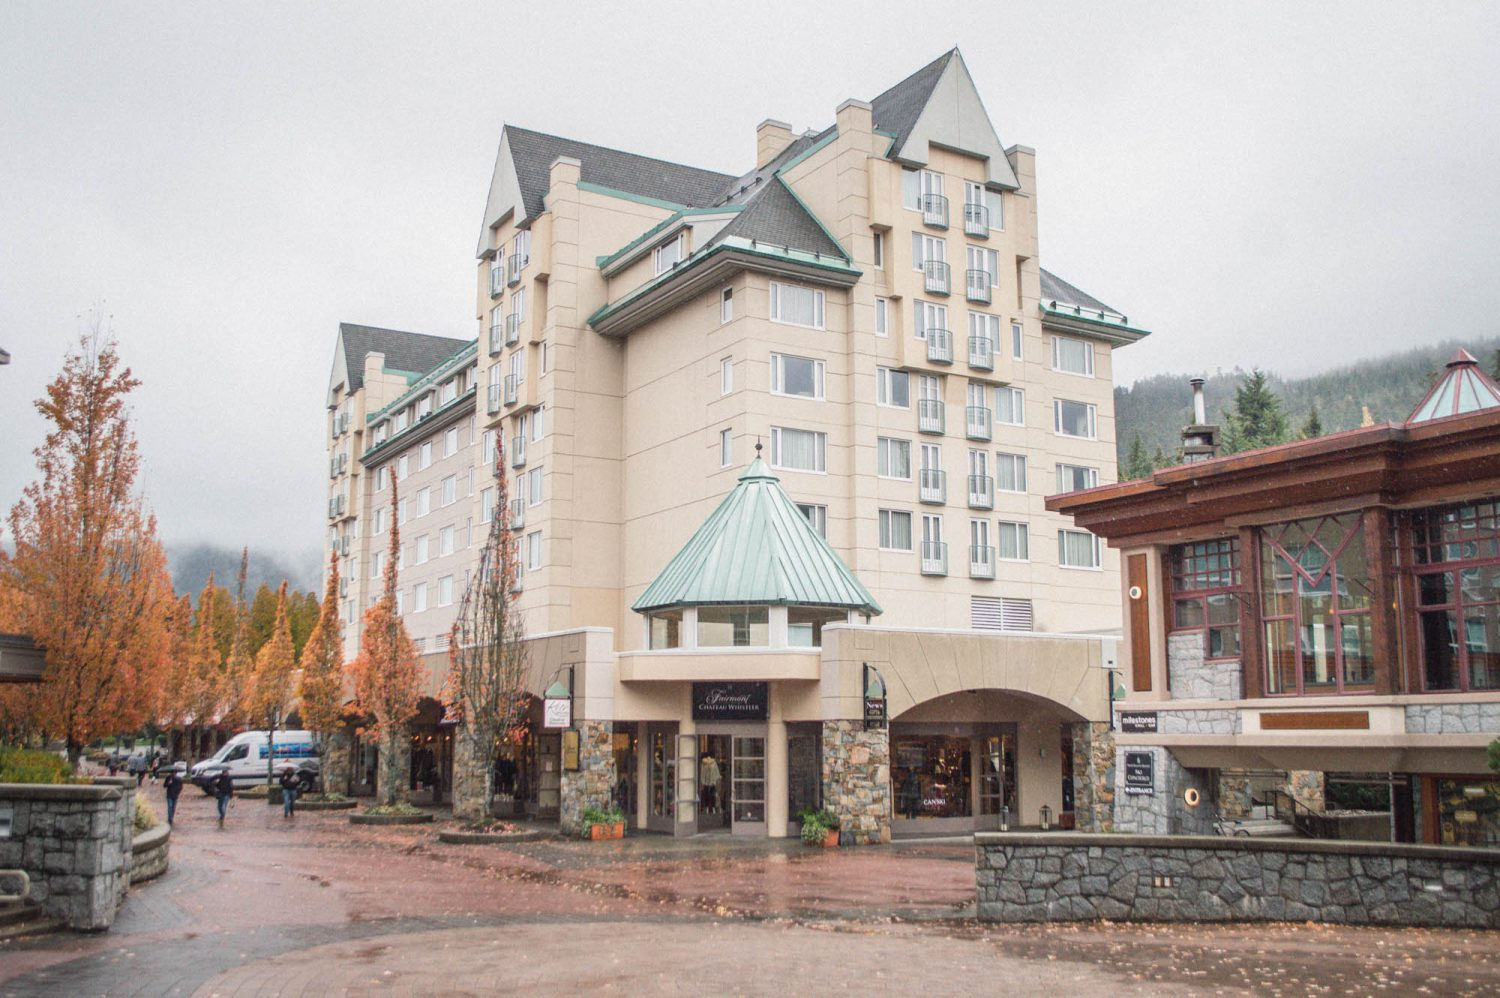 fairmont-whistler-hotel-happy-to-wander-0311